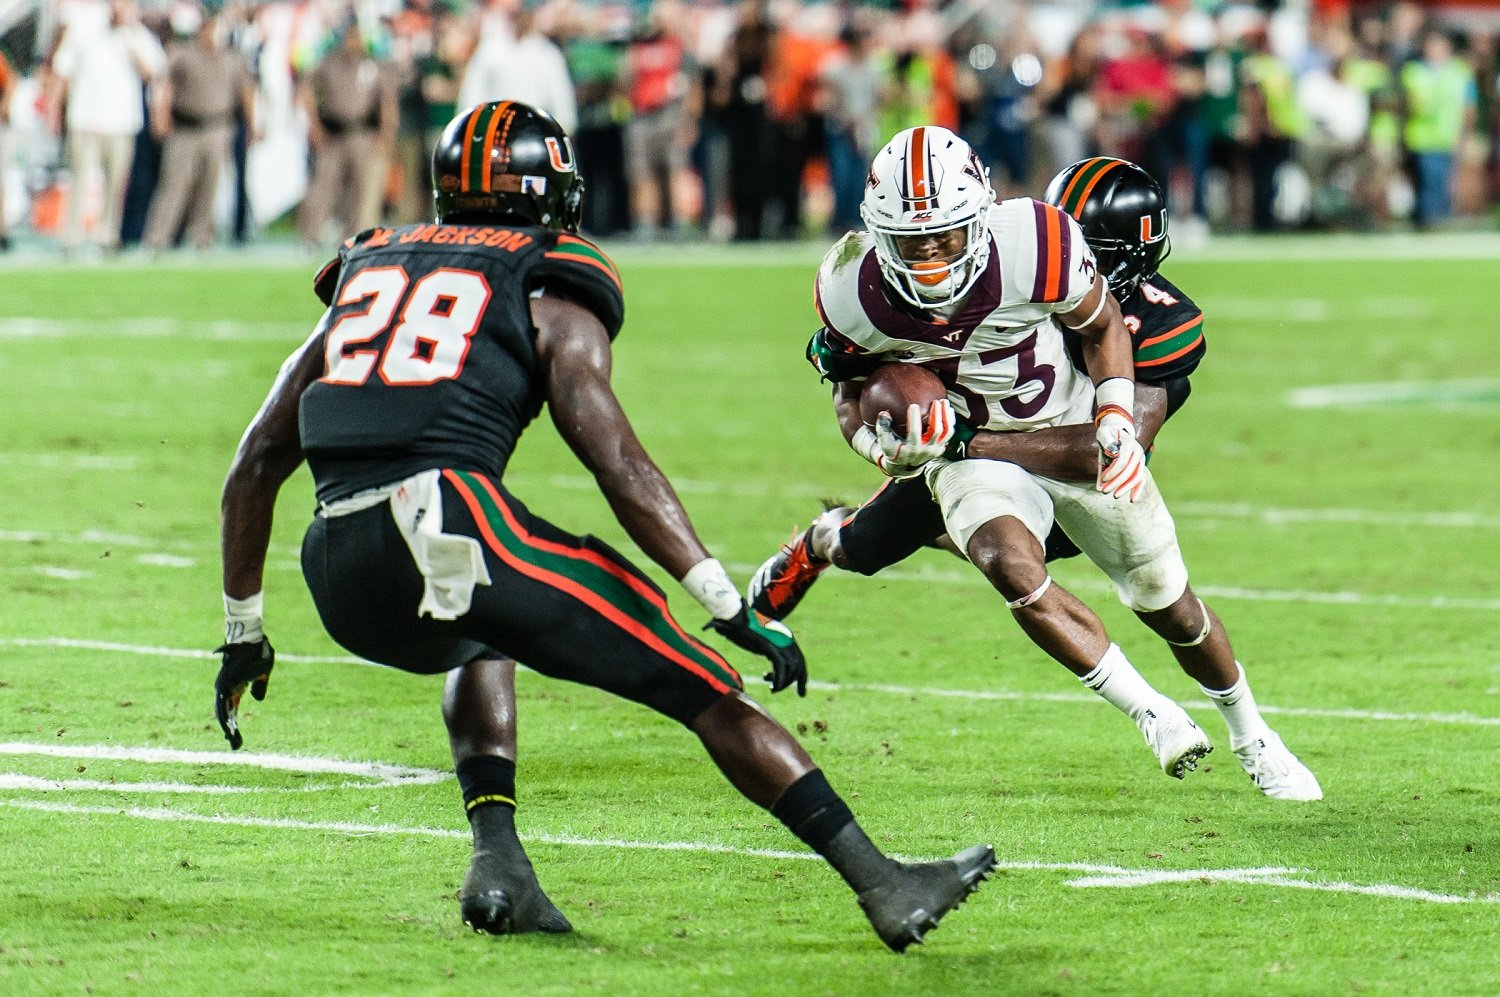 Virginia Tech shifts gears to defending the triple option